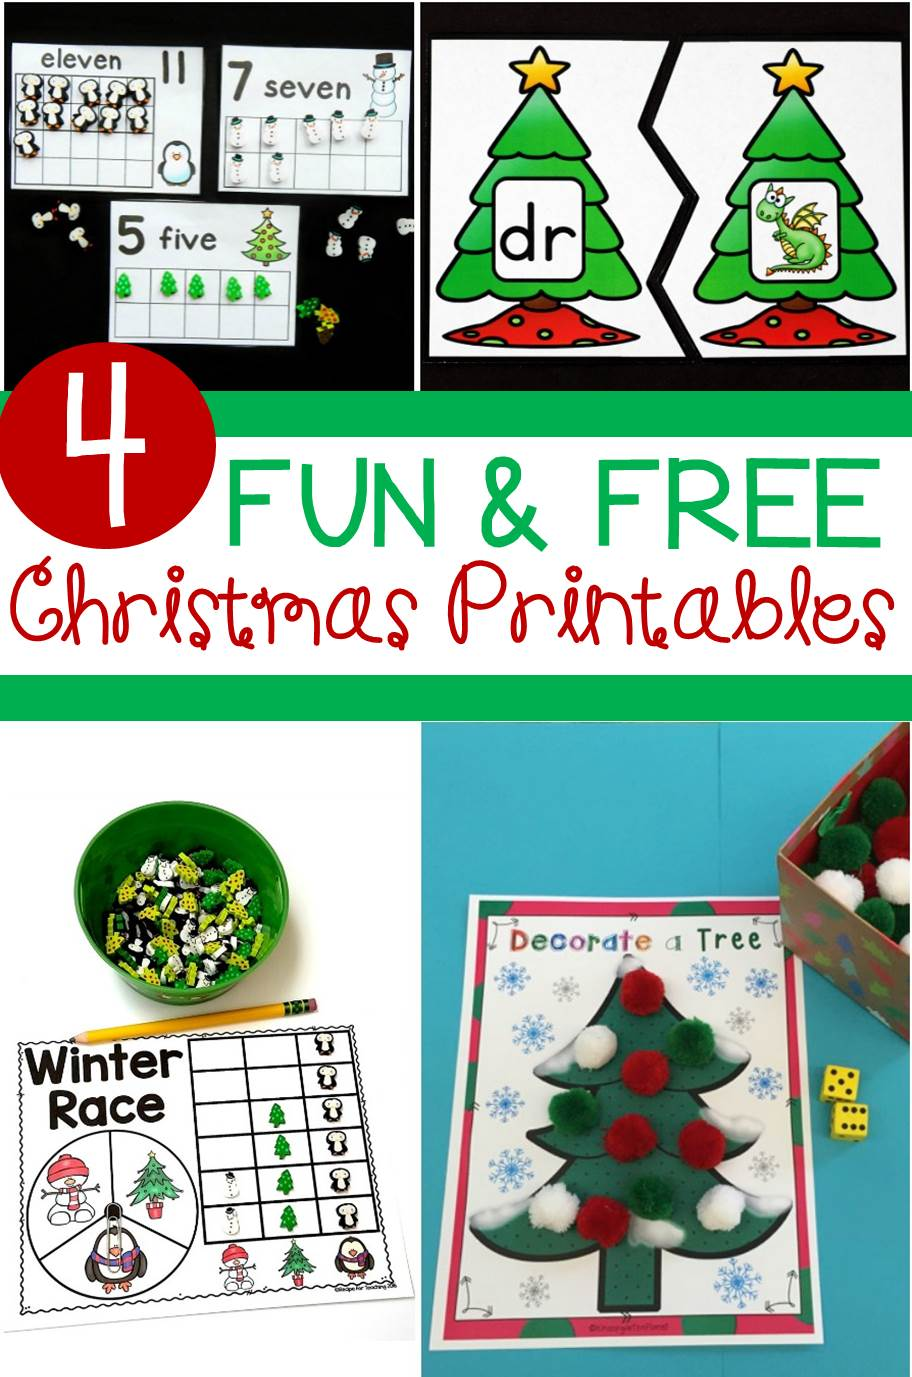 Super fun and FREE Christmas math and literacy activities for kids!